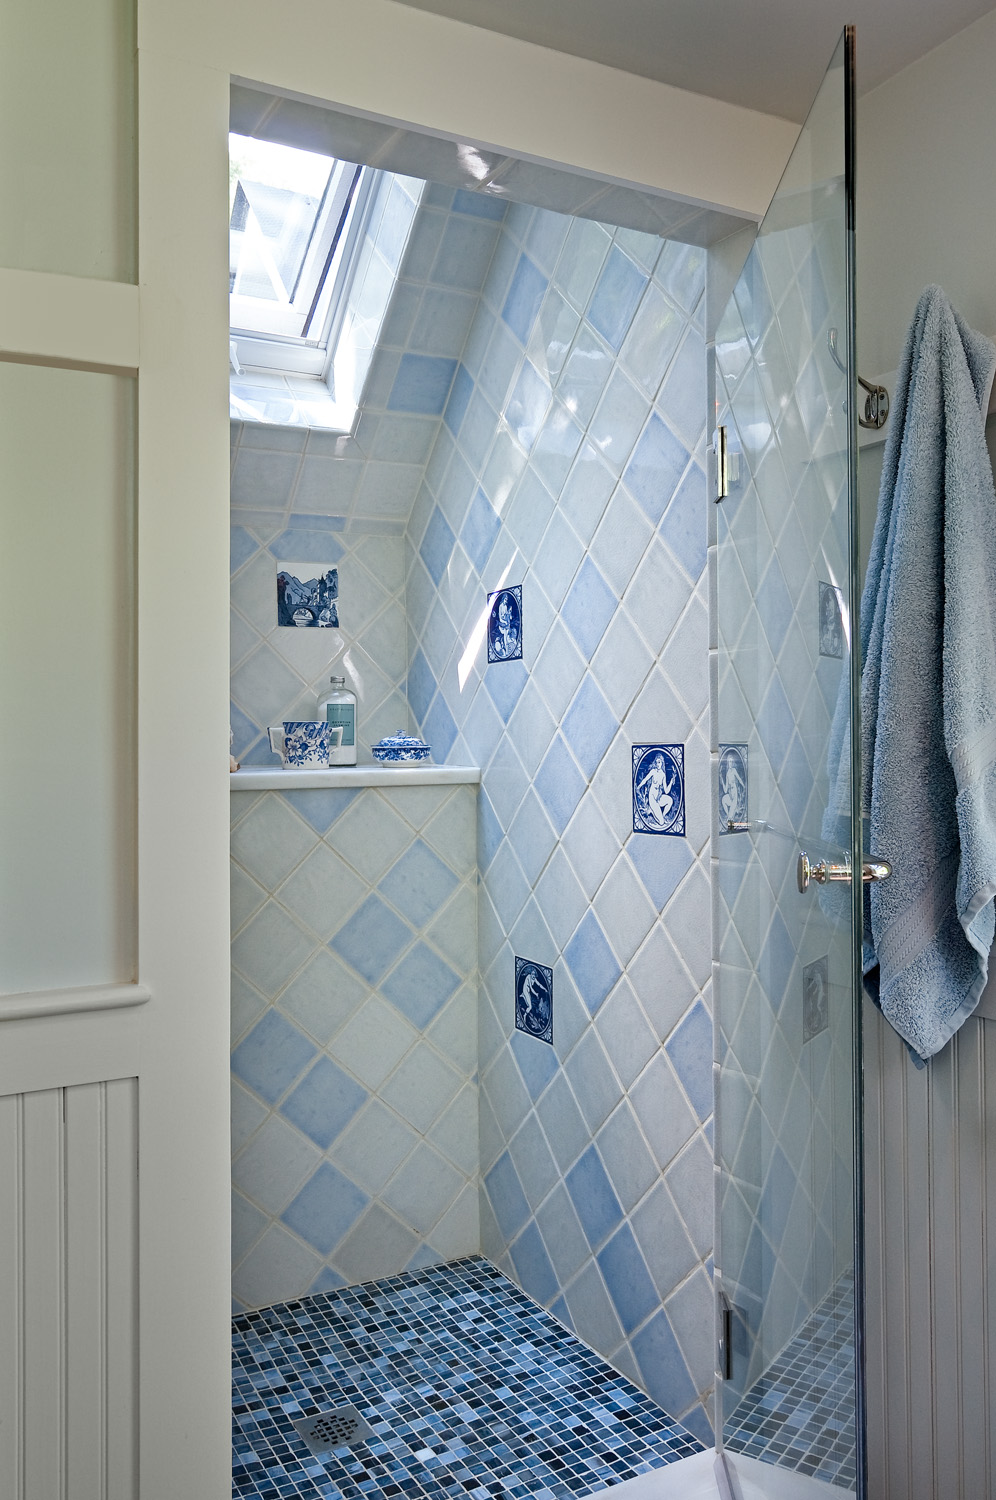 Modern Bathroom With Mosaic Tiles Component - Bathroom - knawi.com